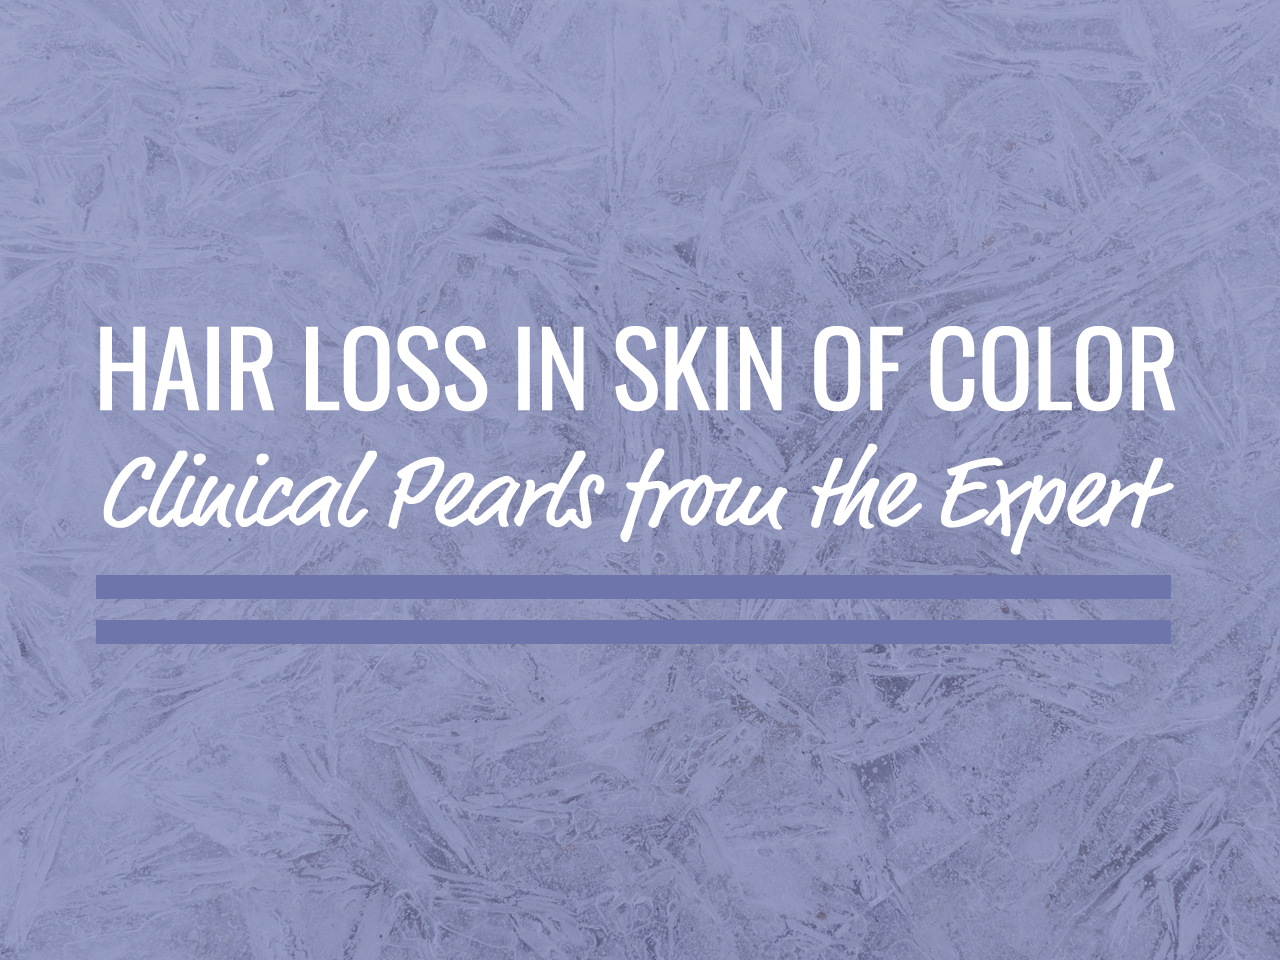 Next Steps in Derm Hair Loss Clinical Pearls from the Expert